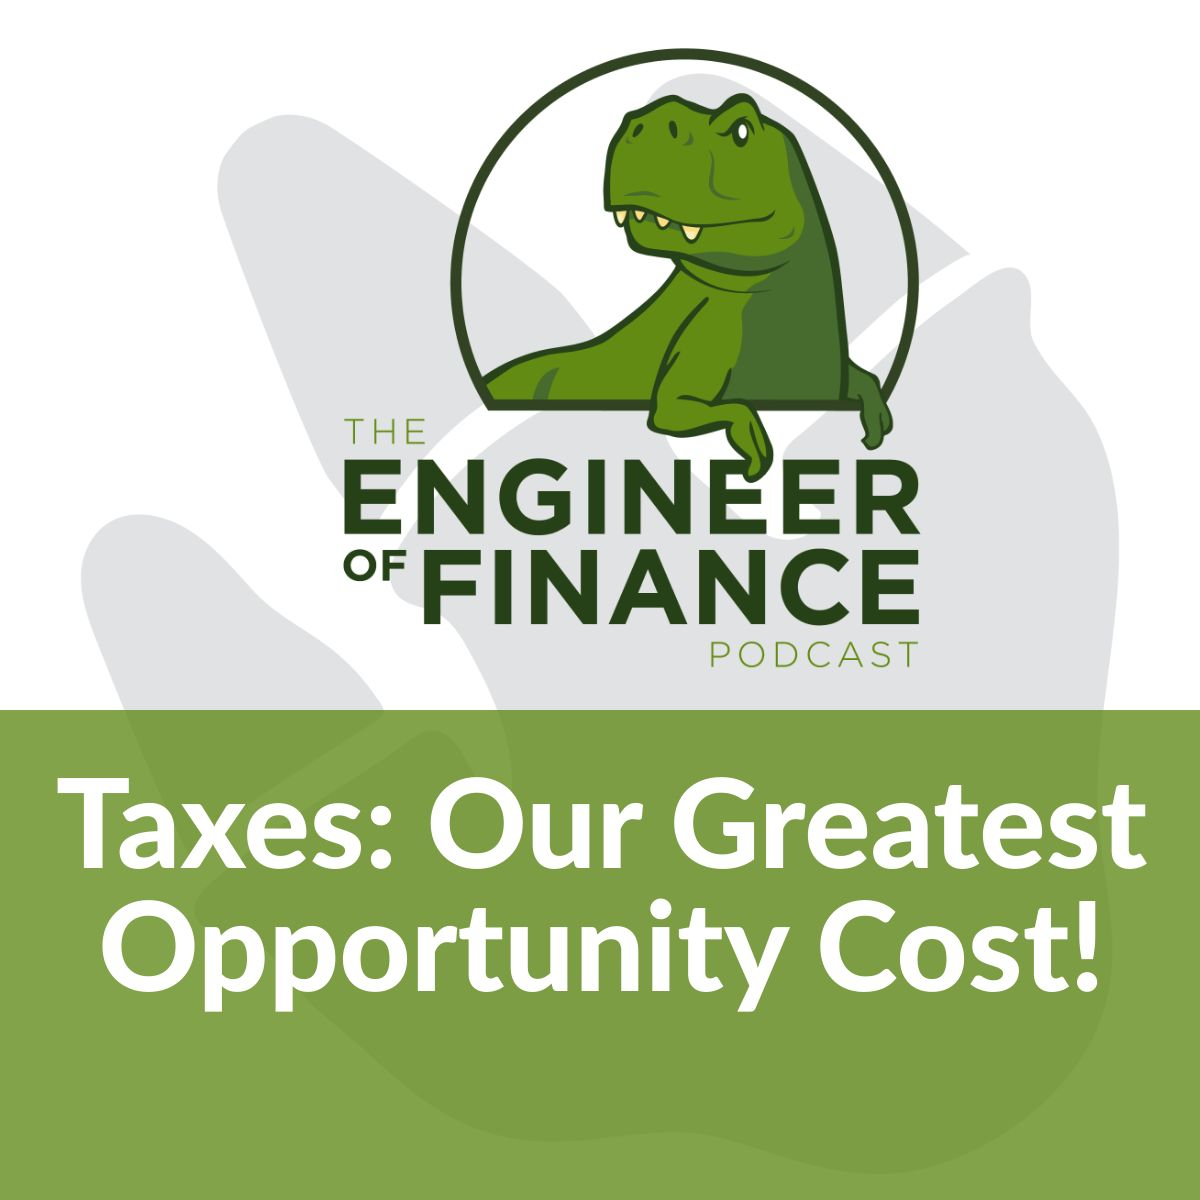 Taxes: Our Greatest Opportunity Cost! – Episode 121